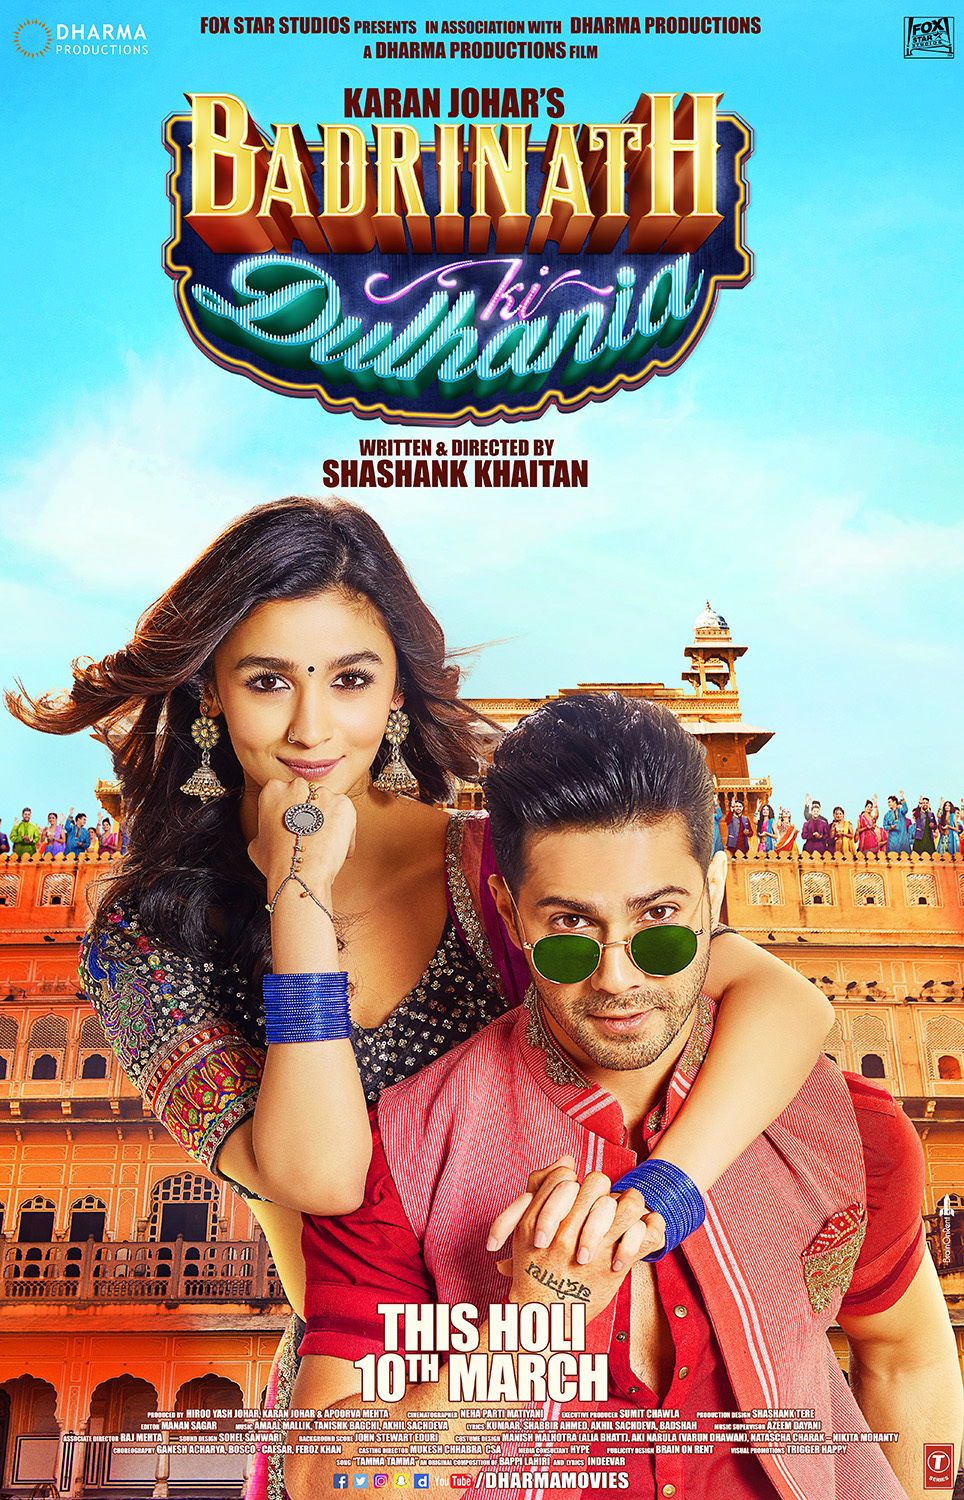 Badrinath Ki Dulhania (2017) Hindi 720p Blu-Ray x265 AAC 1GB